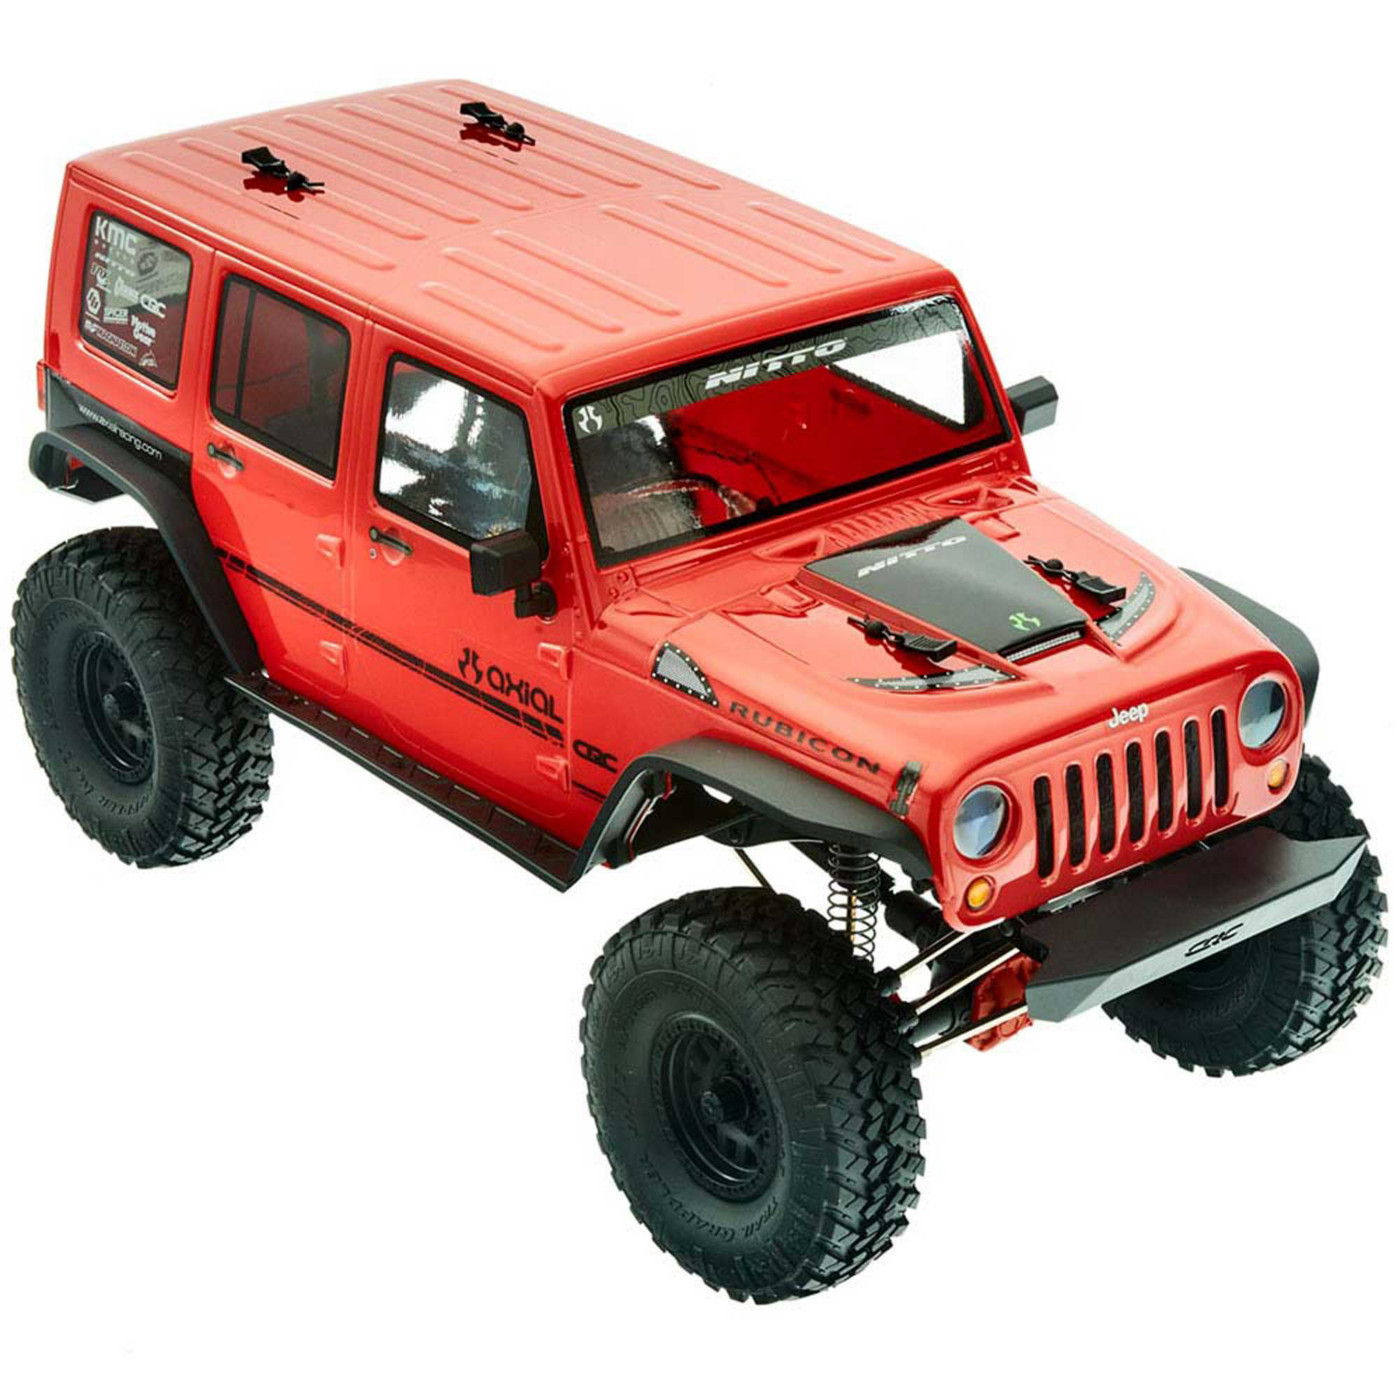 Axial 1/10 SCX10 II 2017 Jeep Wrangler Unlimited CRC RTR